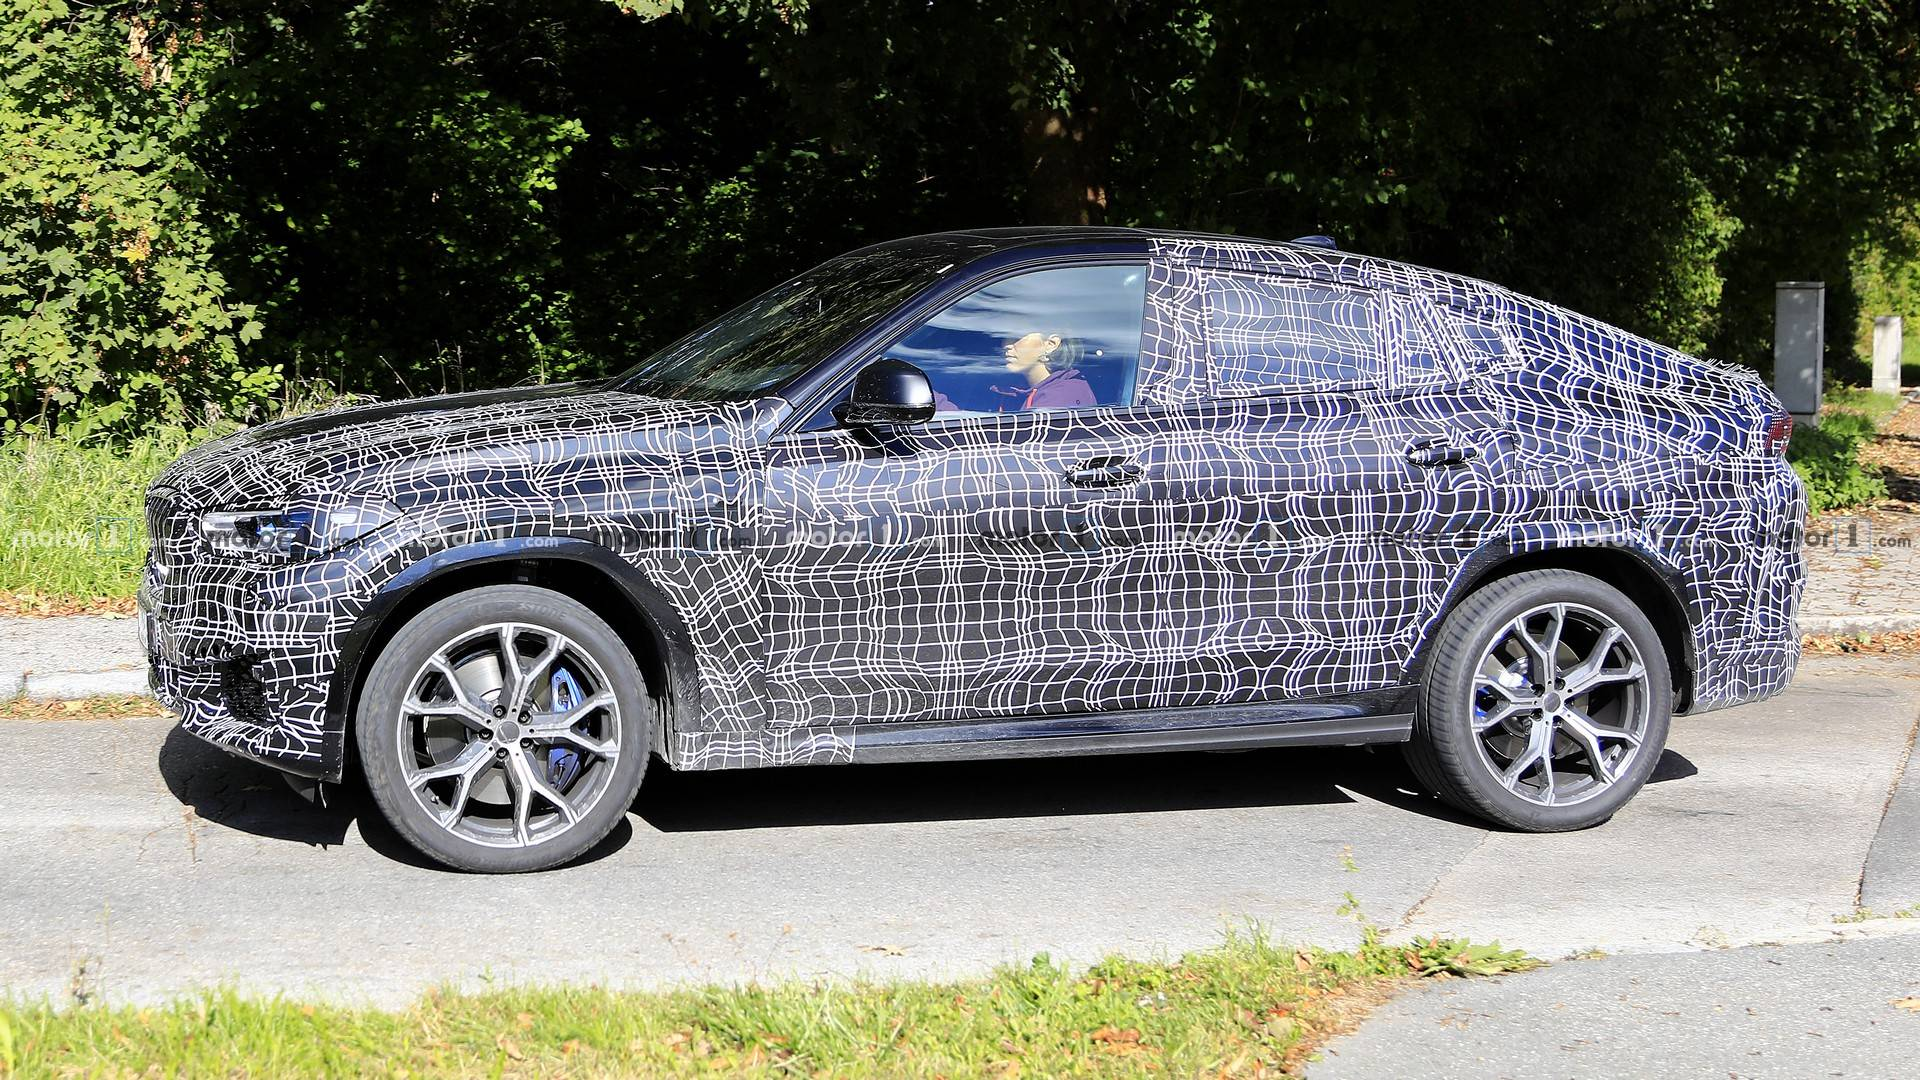 Next Generation Bmw X6 And X6 M Spied Looking Production Ready